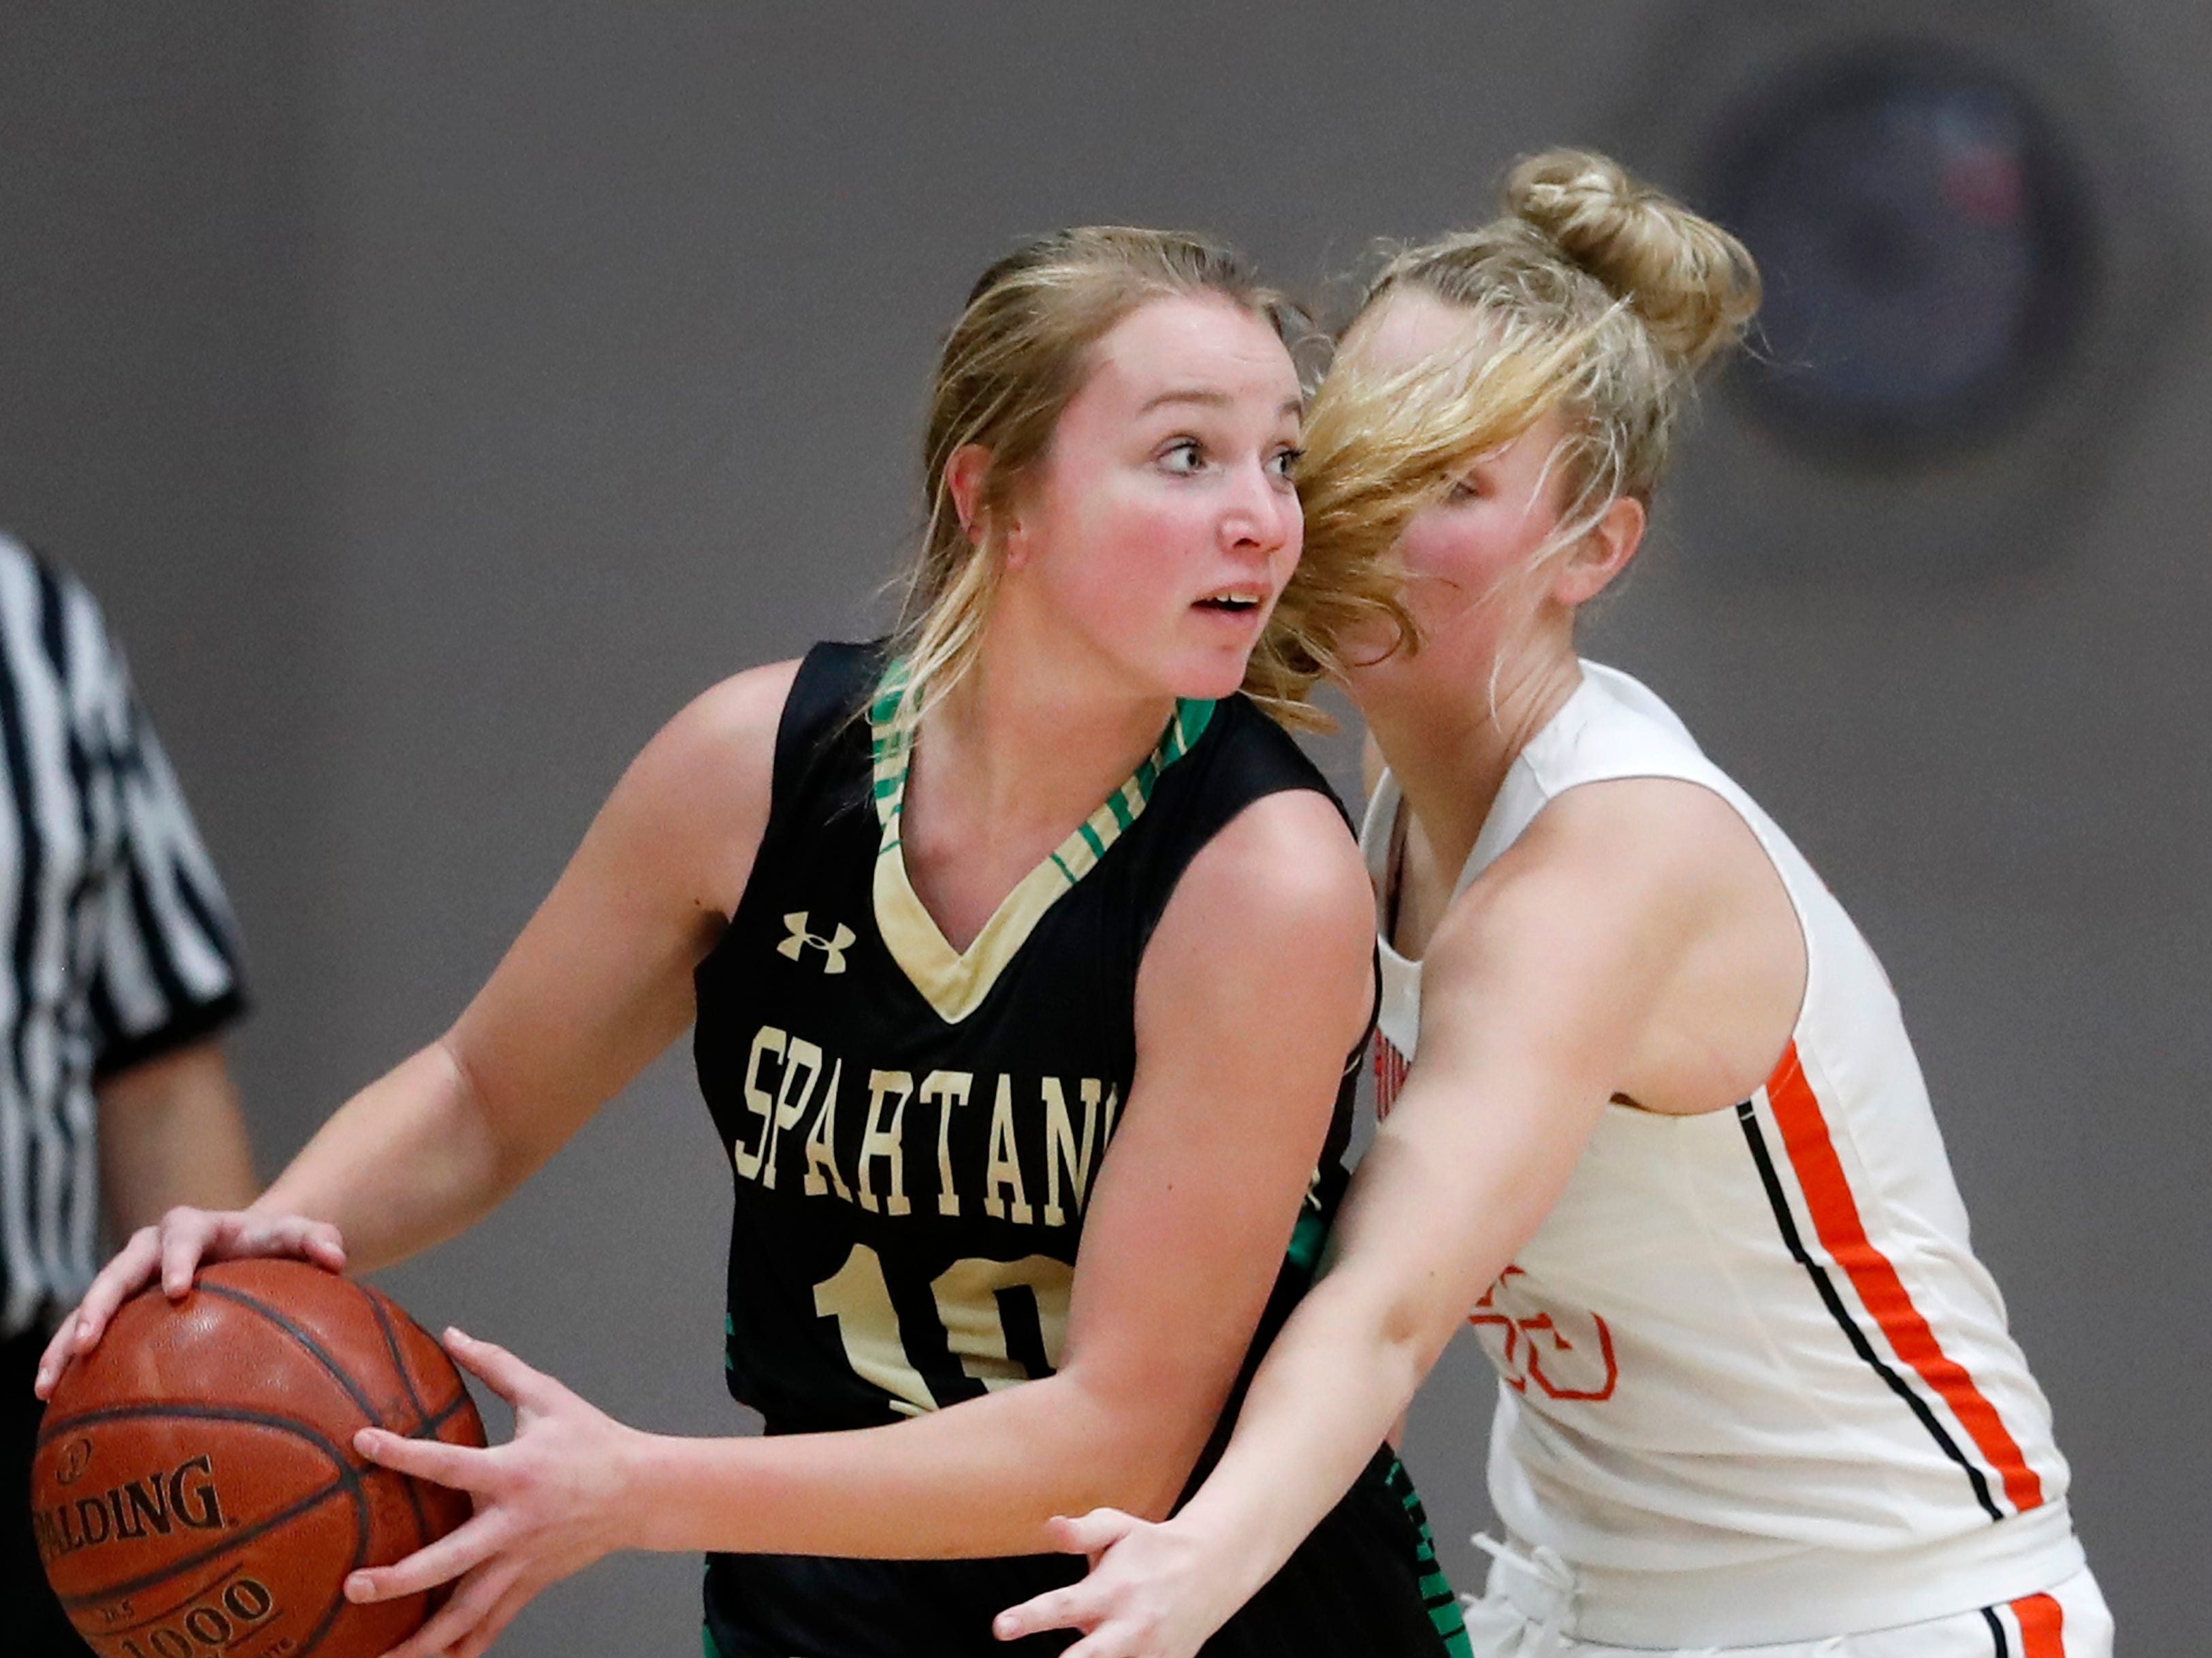 Oshkosh North High SchoolÕs Brooke Ellestad looks to get a pass past Kaukauna High School's Avery Torrey Tuesday, Feb. 5, 2019, in Kaukauna, Wis.